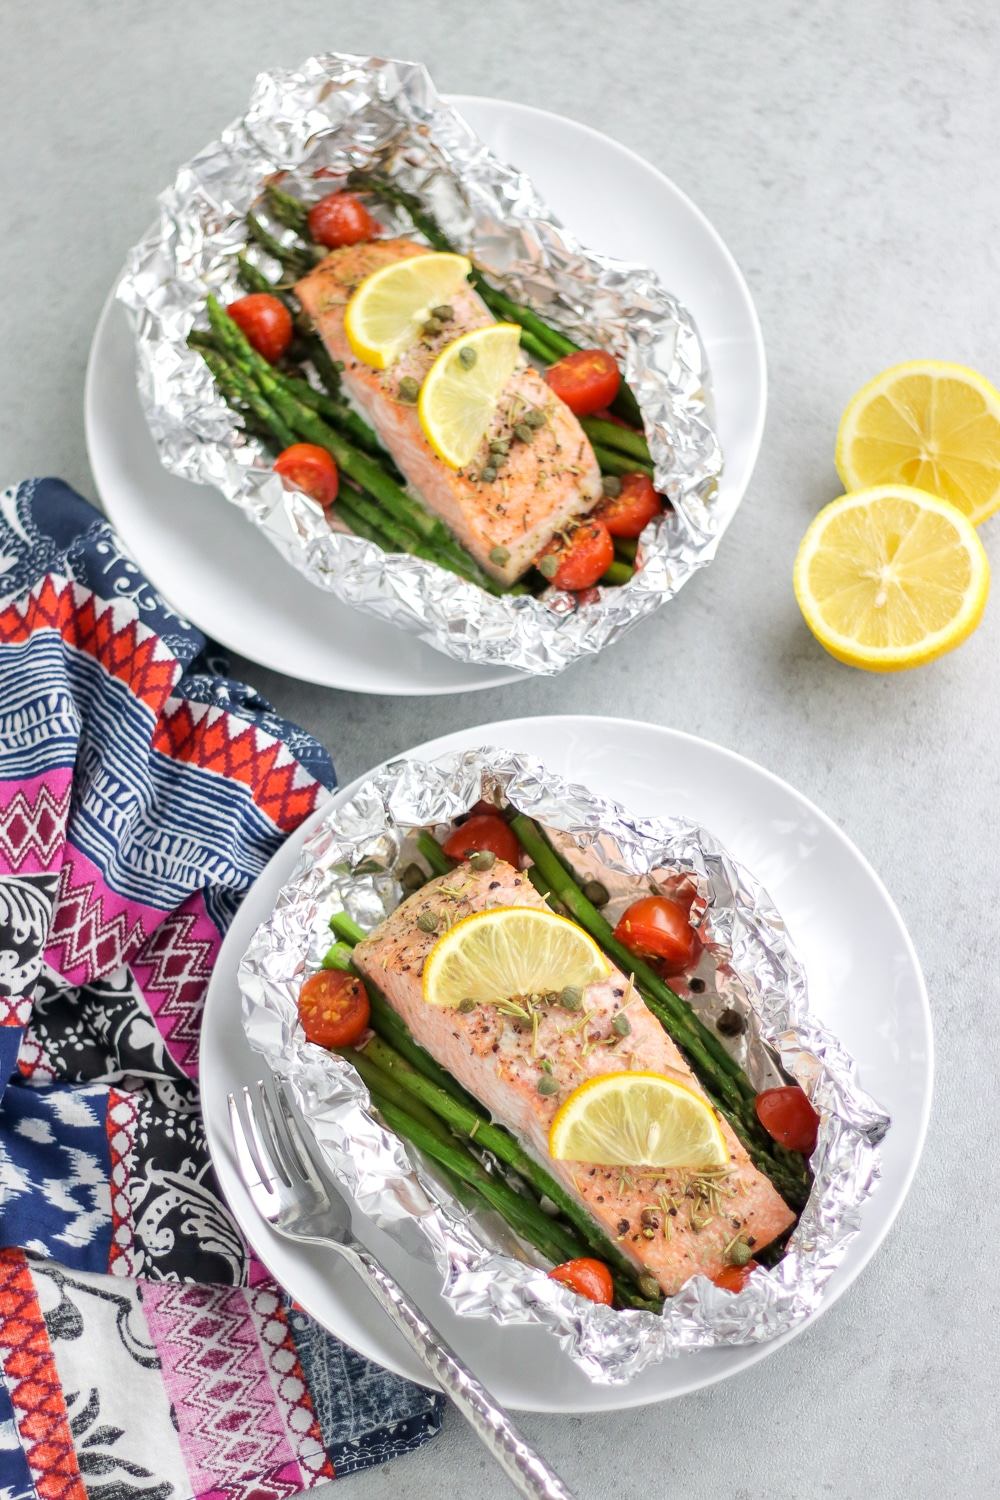 Grilled fish in foil with vegetables